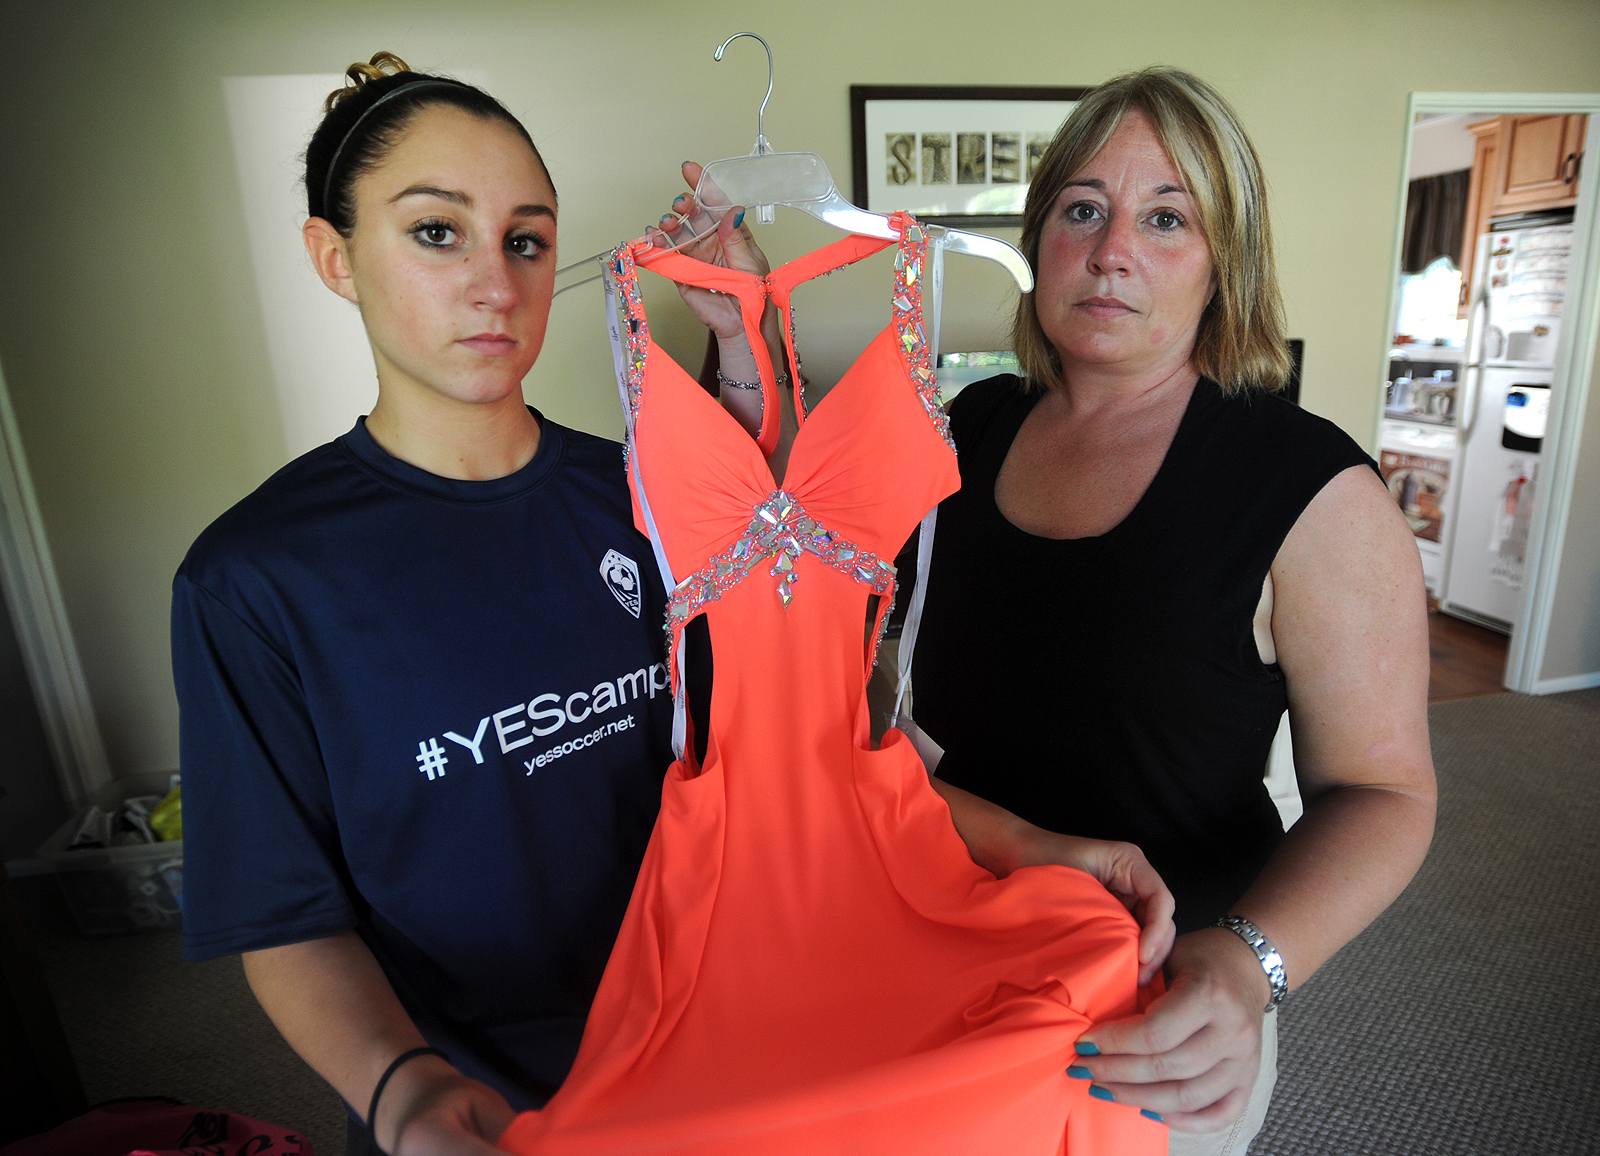 936f4d7b56 US schools crack down on prom dress codes - The Daily Universe